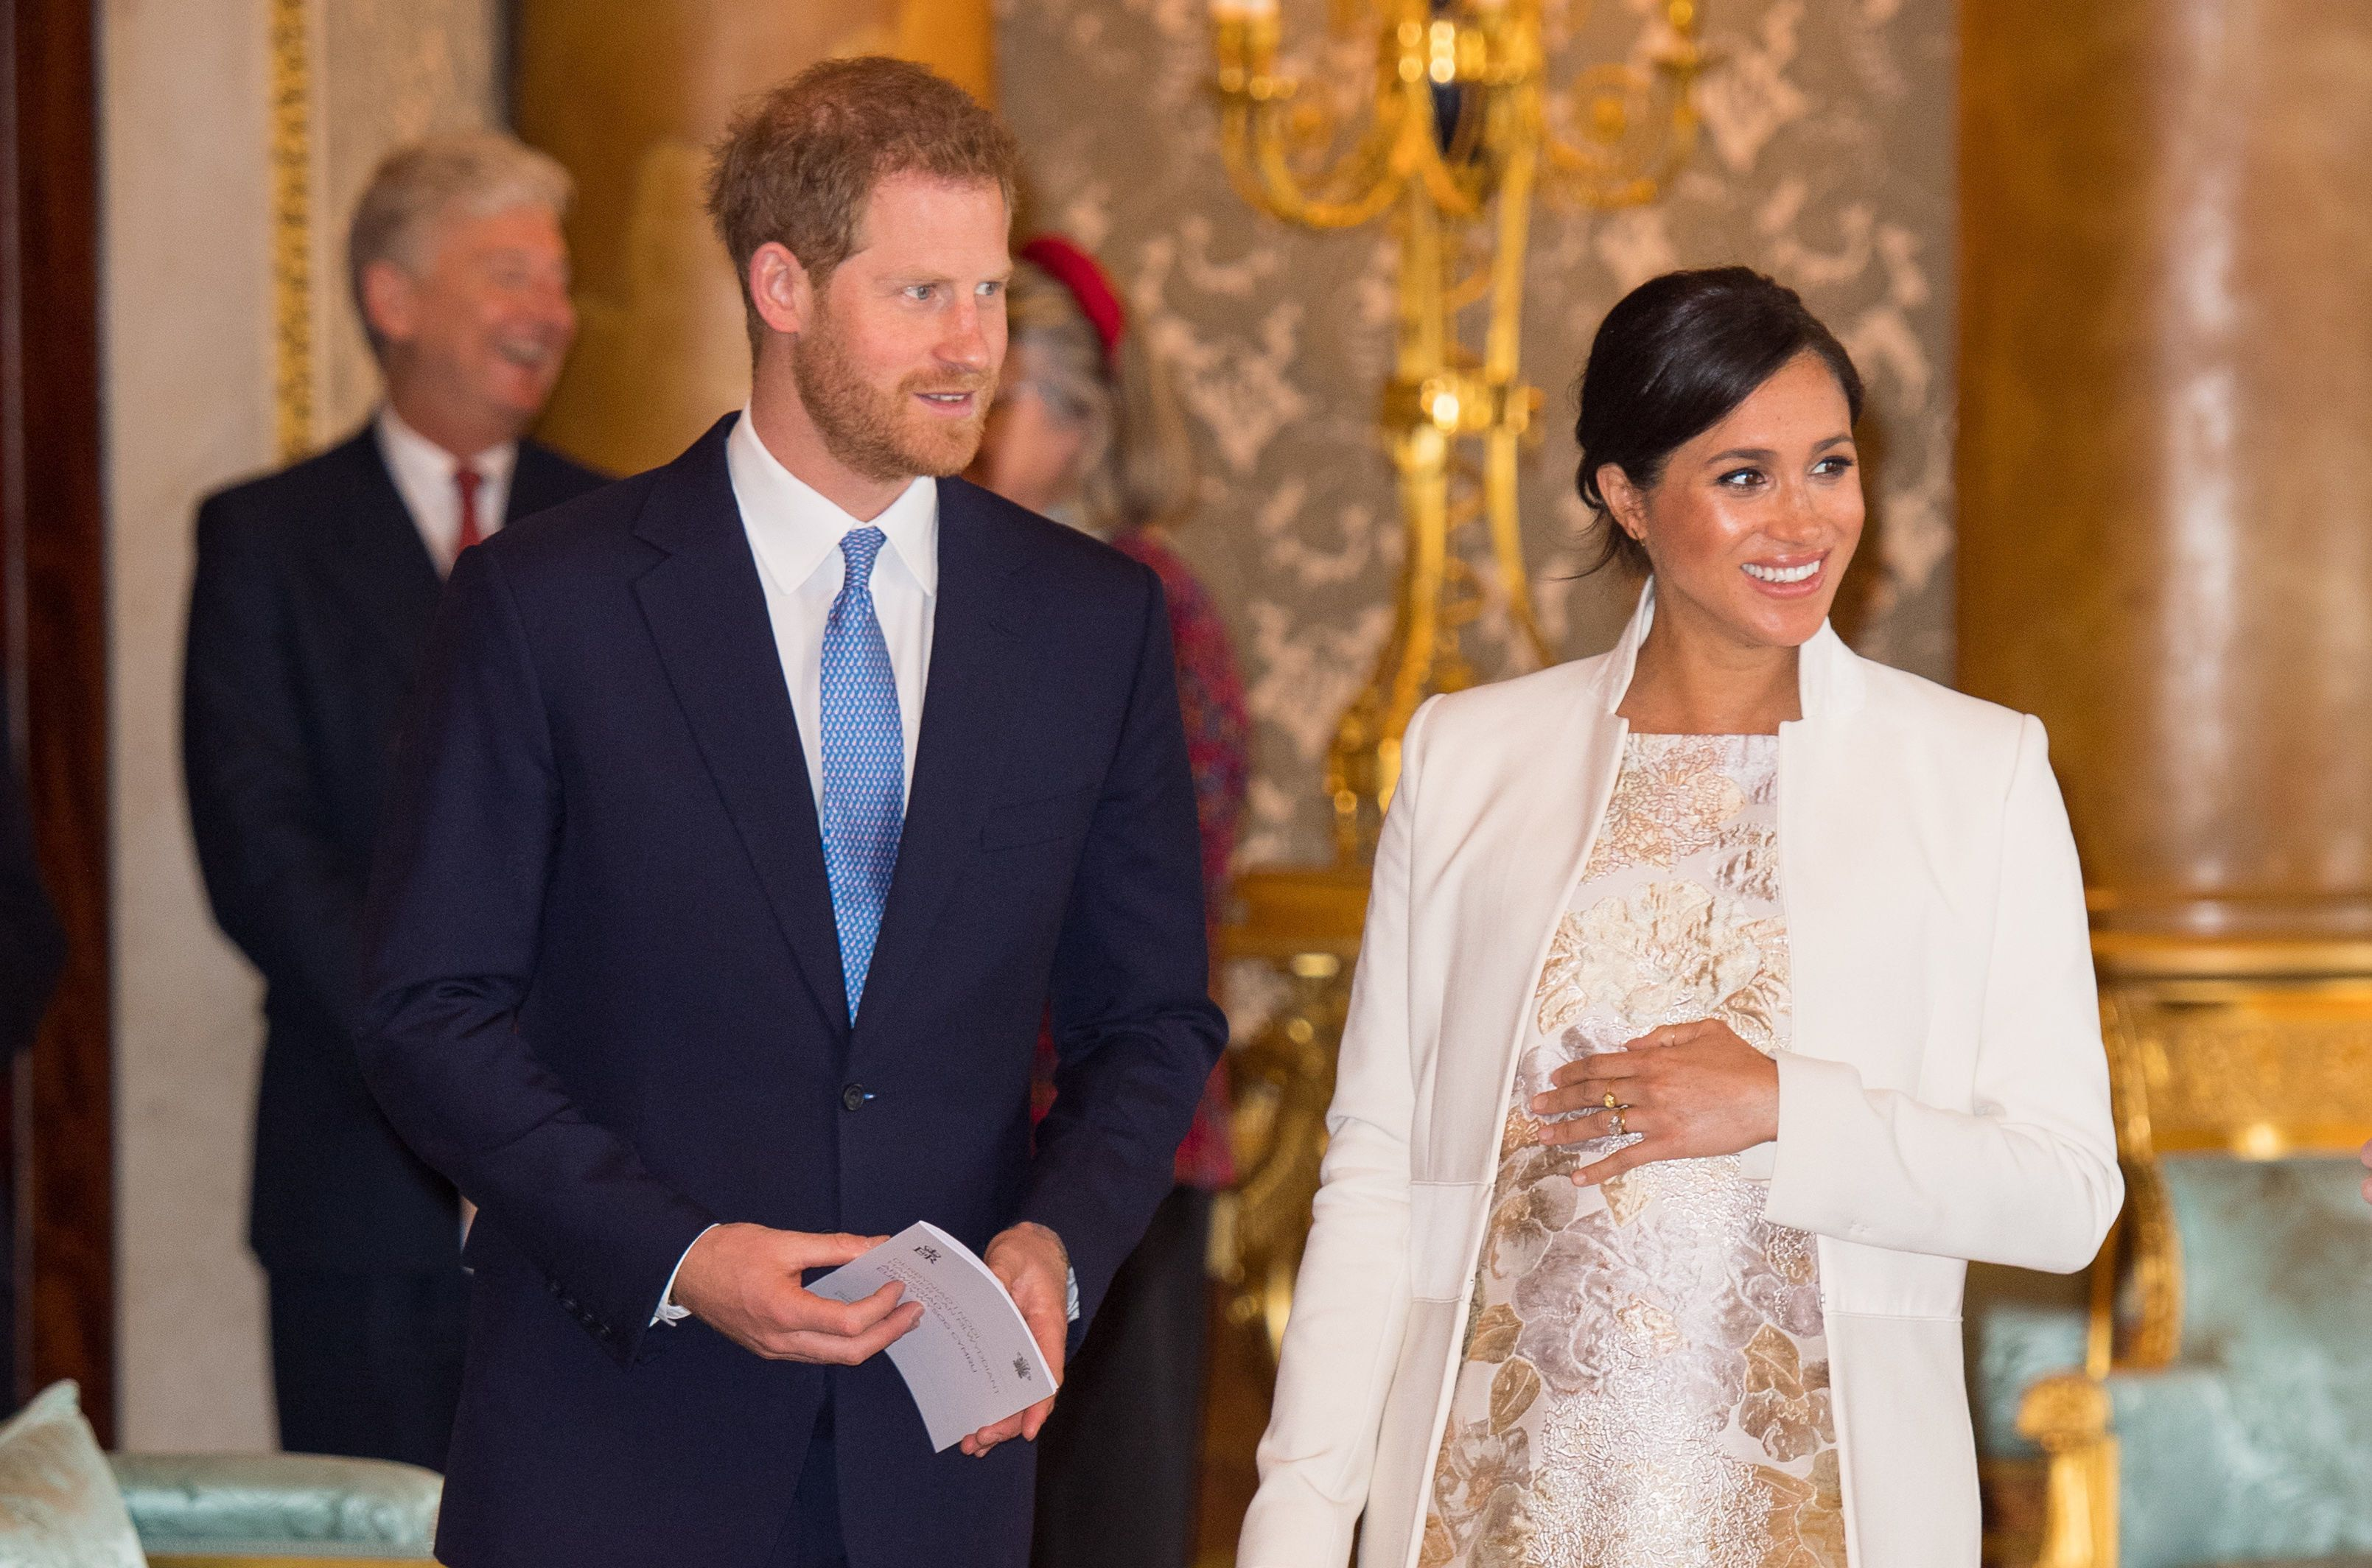 TOPSHOT - Britain's Prince Harry, Duke of Sussex, (L) and Britain's Meghan, Duchess of Sussex (R) attend a reception to mark the 50th Anniversary of the investiture of The Prince of Wales at Buckingham Palace in London on March 5, 2019. - The Queen hosted a reception to mark the Fiftieth Anniversary of the investiture of Britain's Prince Charles, her son, as the Prince of Wales. Prince Charles was created The Prince of Wales aged 9 on July 26th 1958 and was formally invested with the title by Her Majesty The Queen on July 1st 1969 at Caernarfon Castle. (Photo by Dominic Lipinski / POOL / AFP)        (Photo credit should read DOMINIC LIPINSKI/AFP/Getty Images)